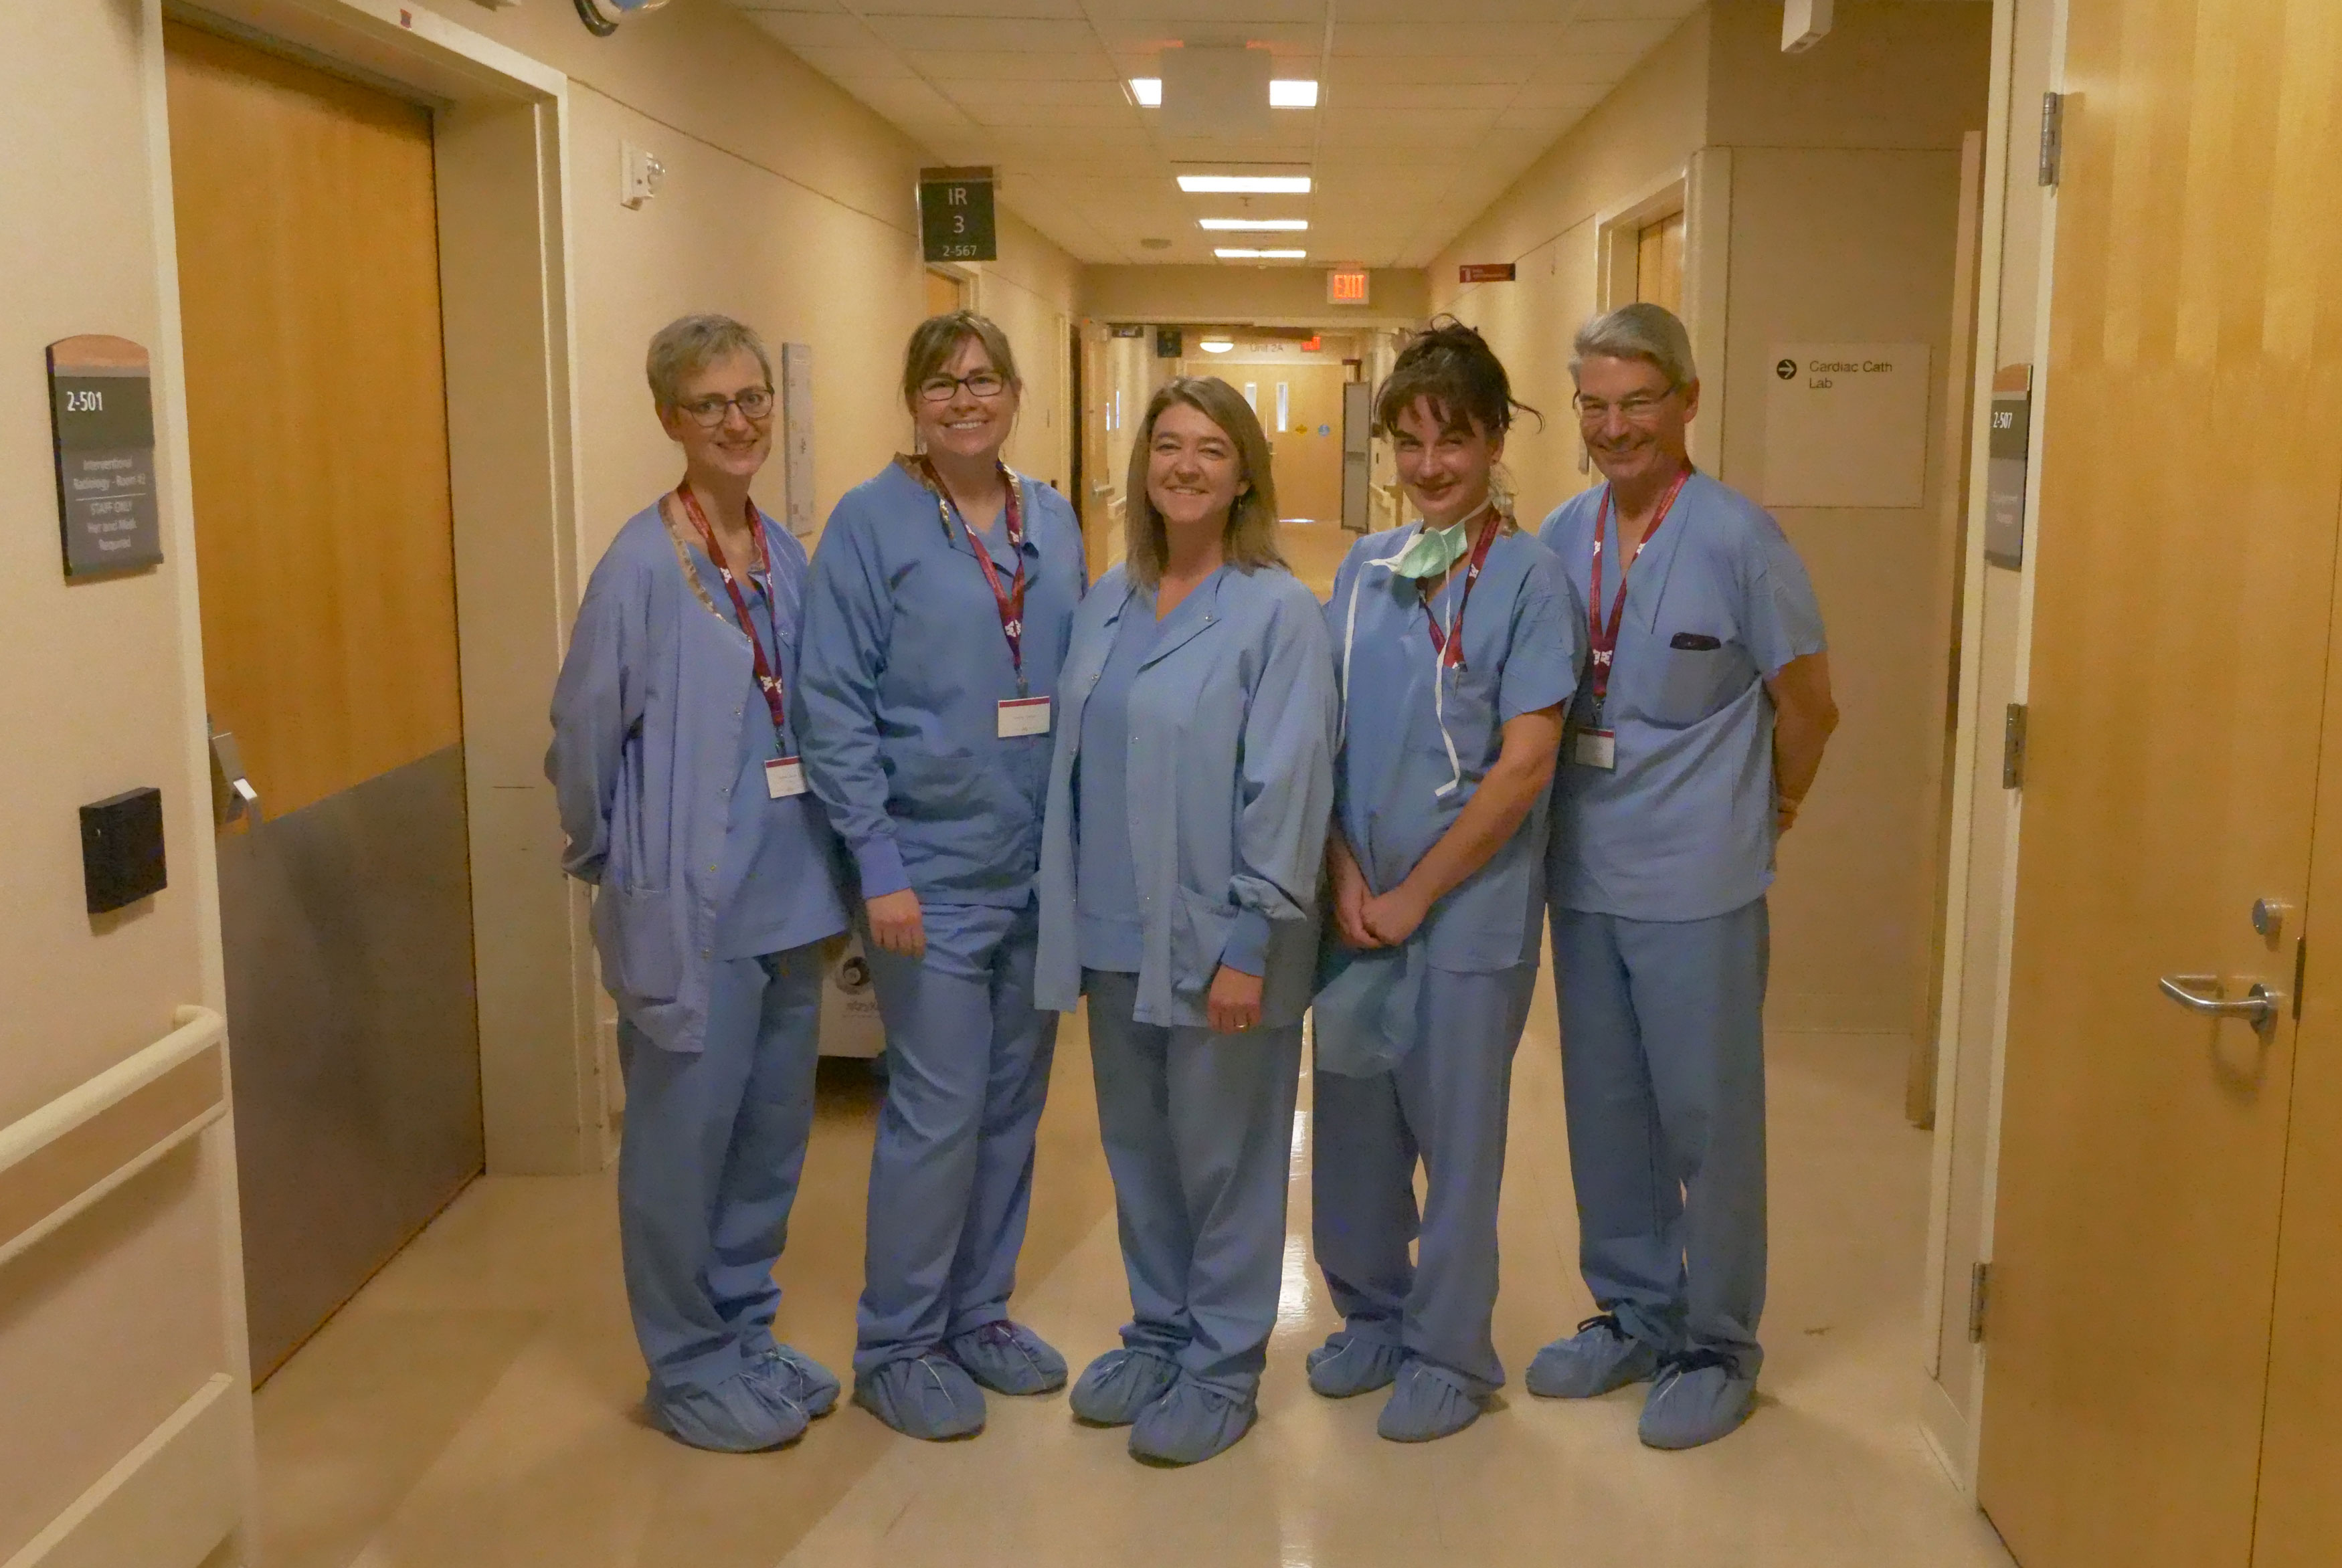 A group of medical technology professionals standing together.